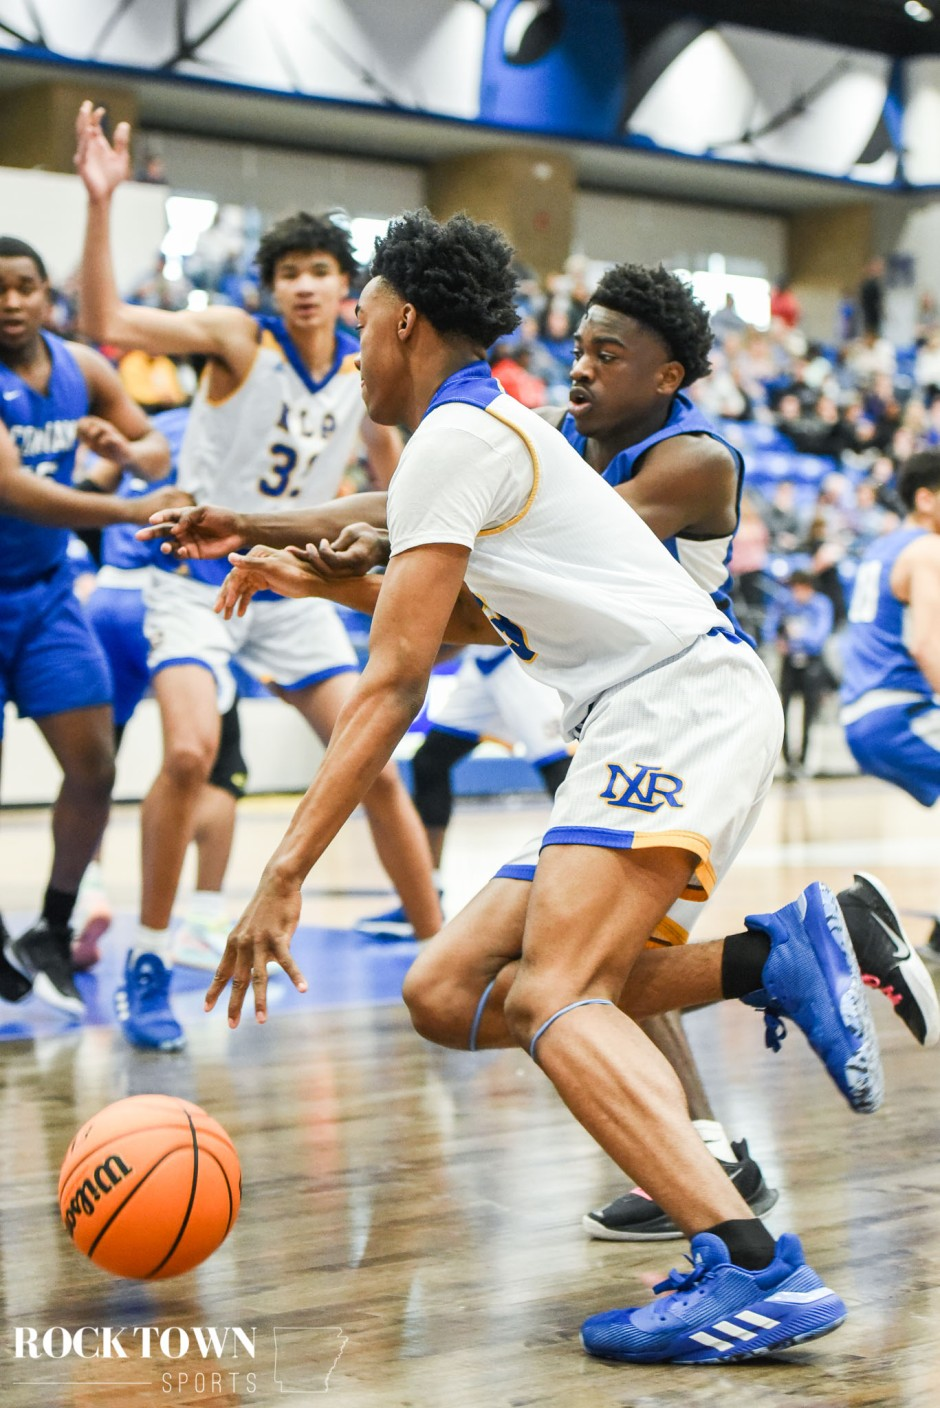 NLR_conway_bball_2020(i)-16